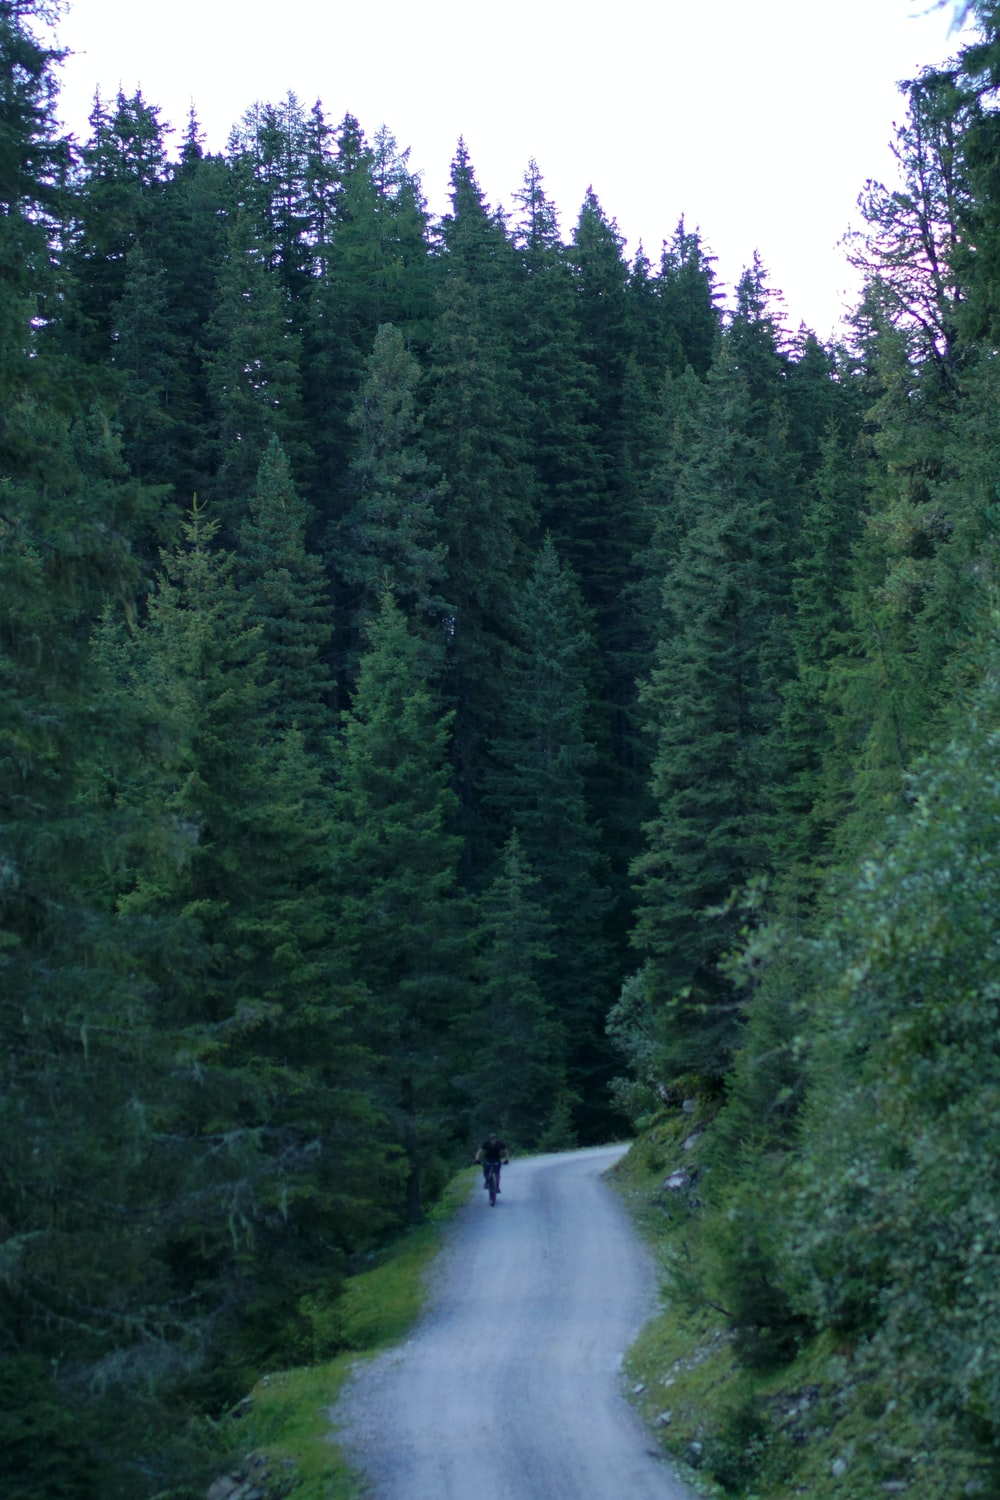 person walking on road between green trees